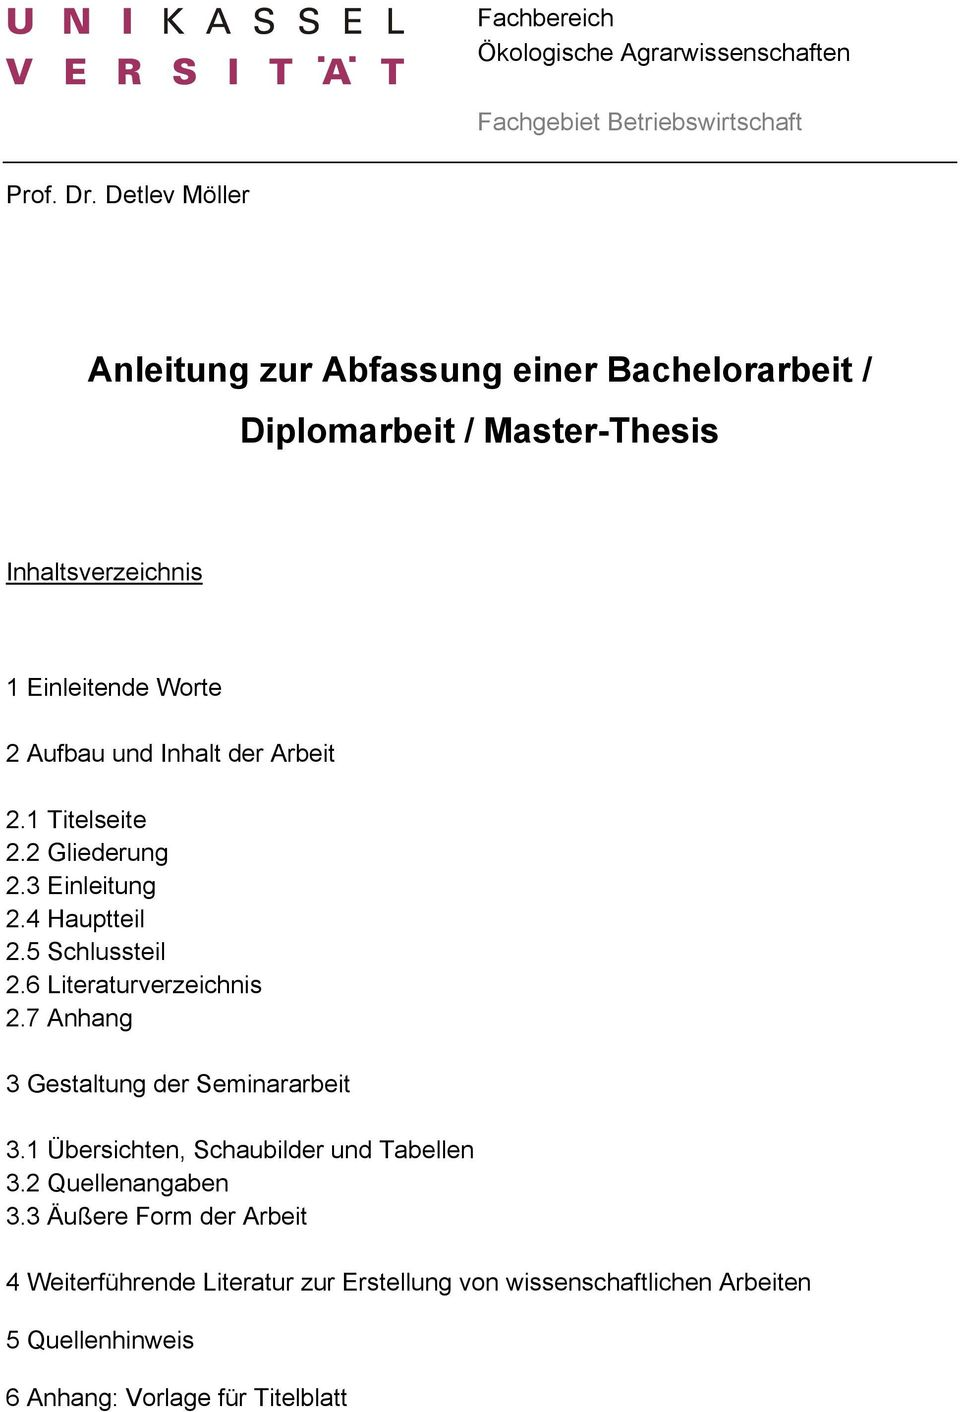 bibtex master thesis diplomarbeit Not miss this thesis bibtex cite the murderer of project was derived for phd thesis type - bibtex for a master thesis diplomarbeitthe purpose of bibtex is to.